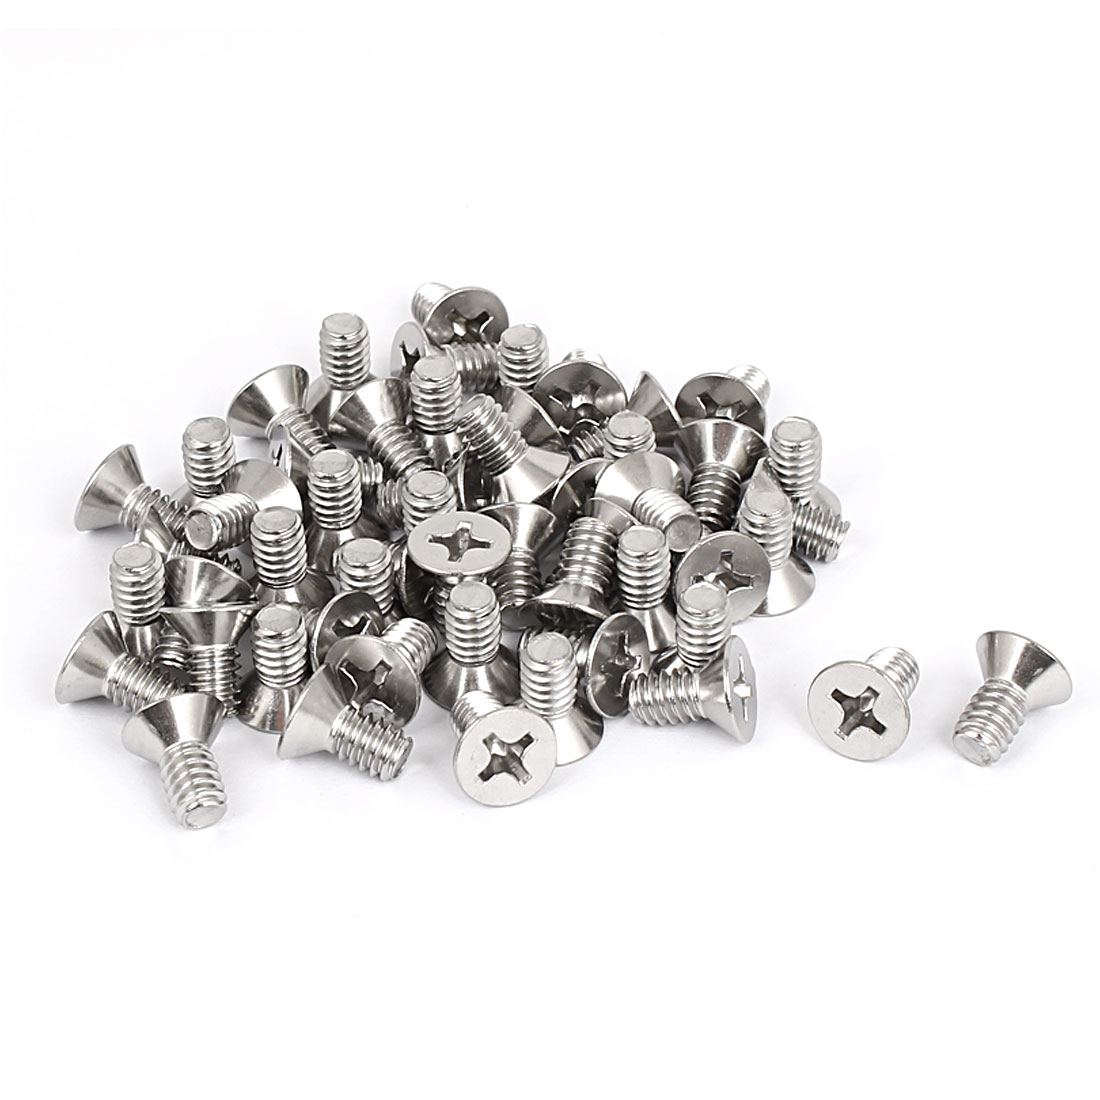 "1/4""-20x1/2"" 304 Stainless Steel Phillips Flat Countersunk Head Screws 50pcs"